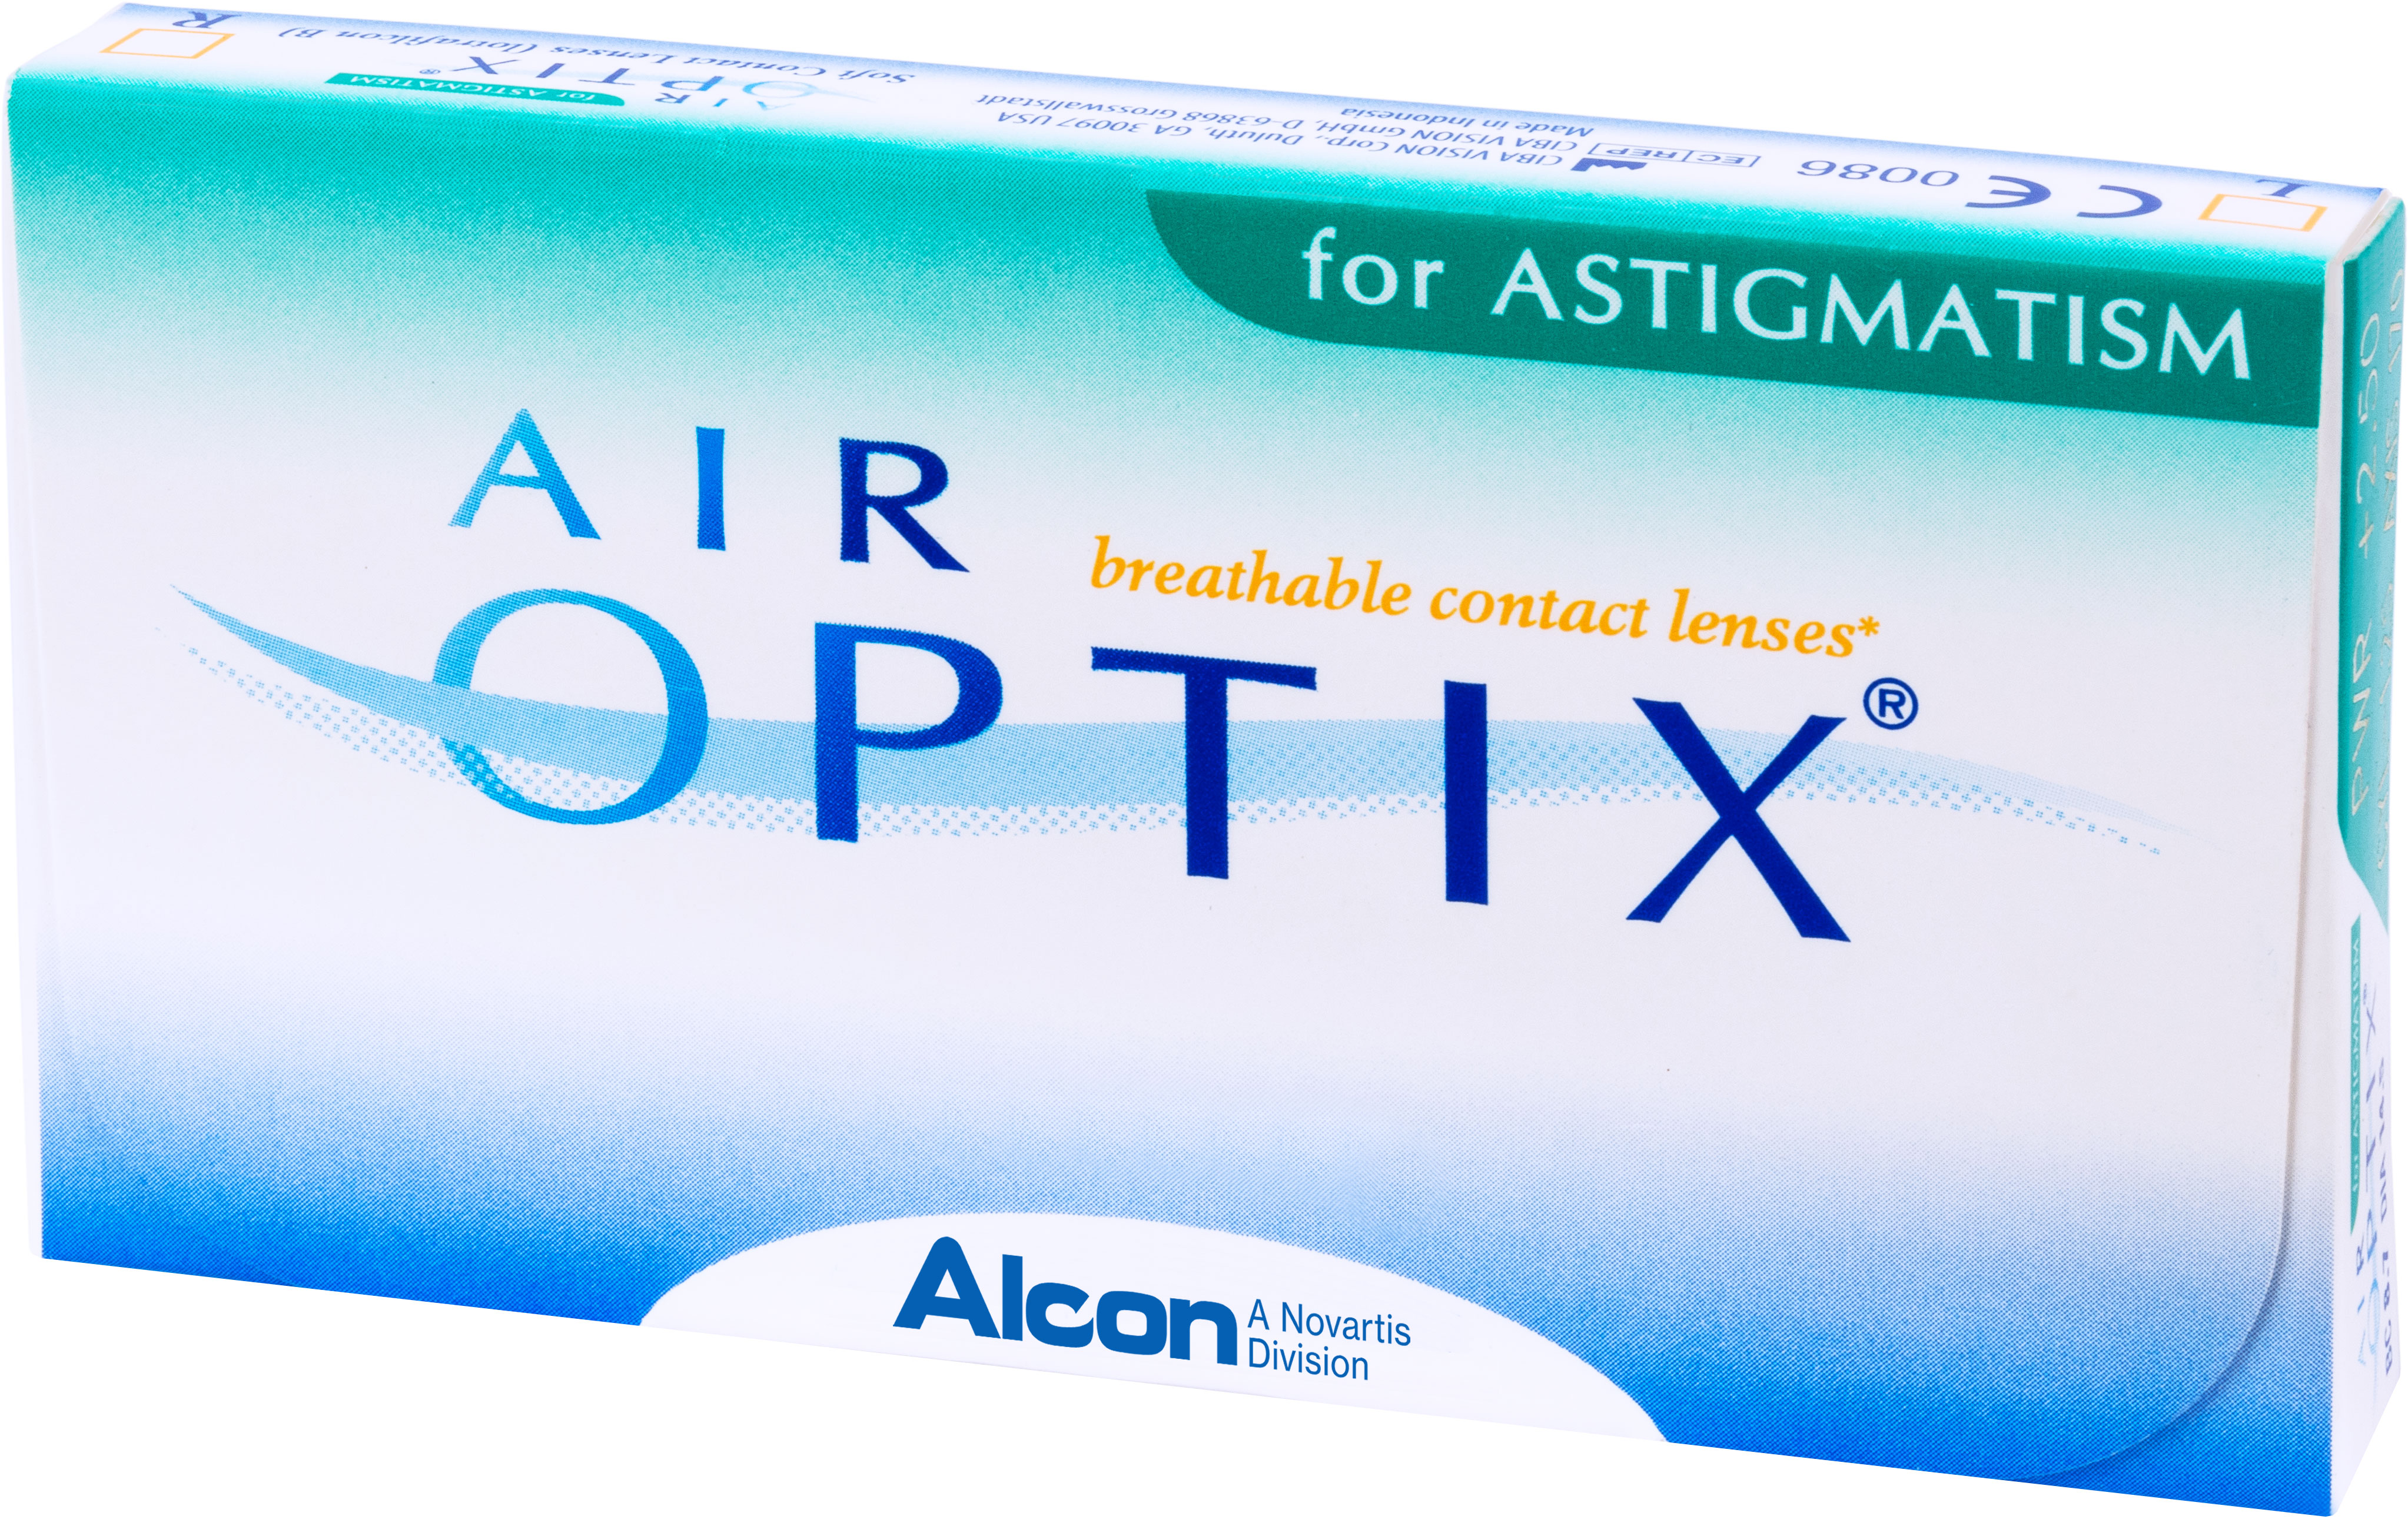 Аlcon контактные линзы Air Optix for Astigmatism 3pk /BC 8.7/DIA14.5/PWR -6.50/CYL -0.75/AXIS 140100019839with Hydraclear